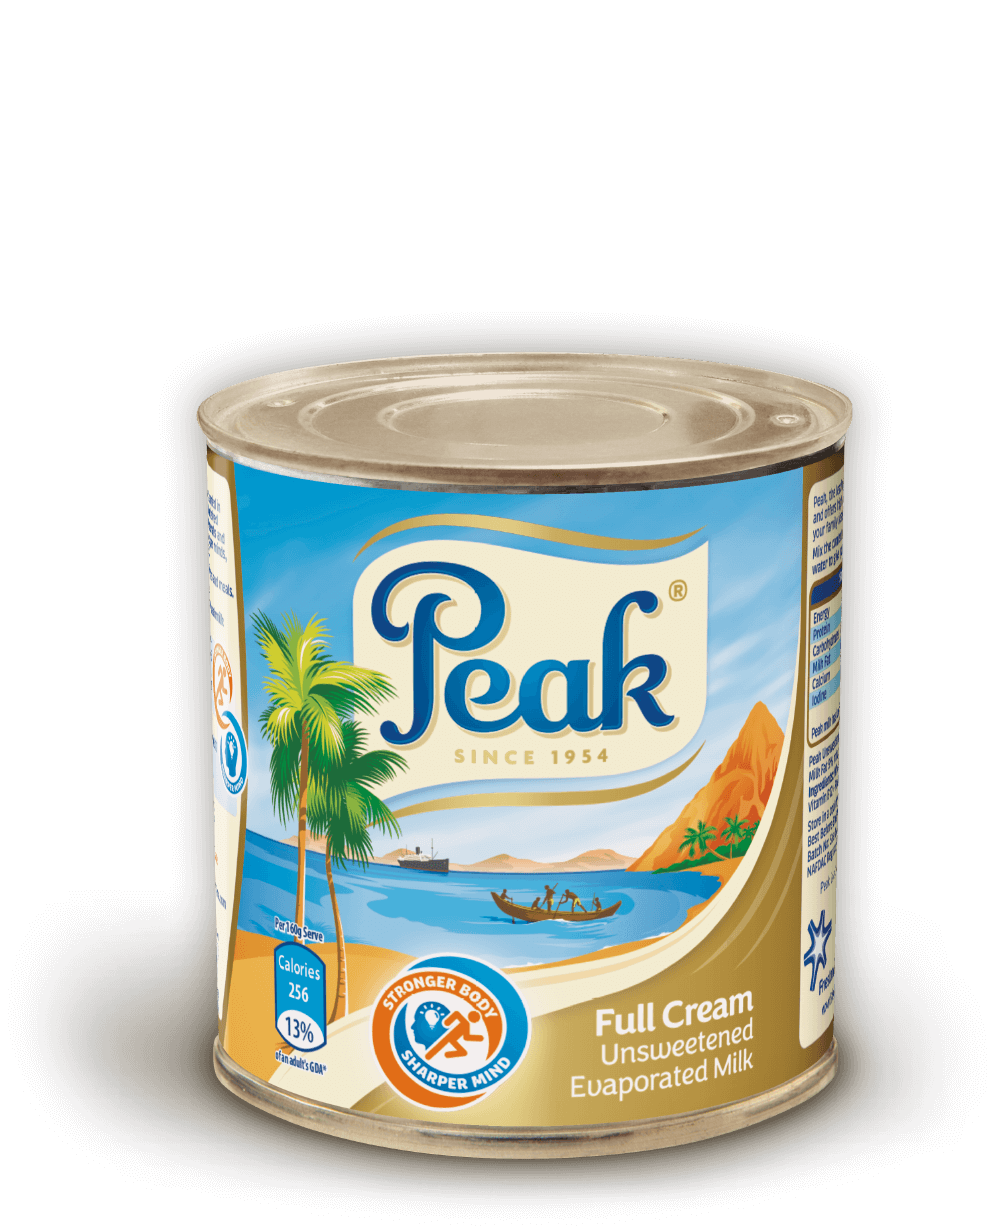 Peak Full Cream Unsweetened Evaporated Milk Tin